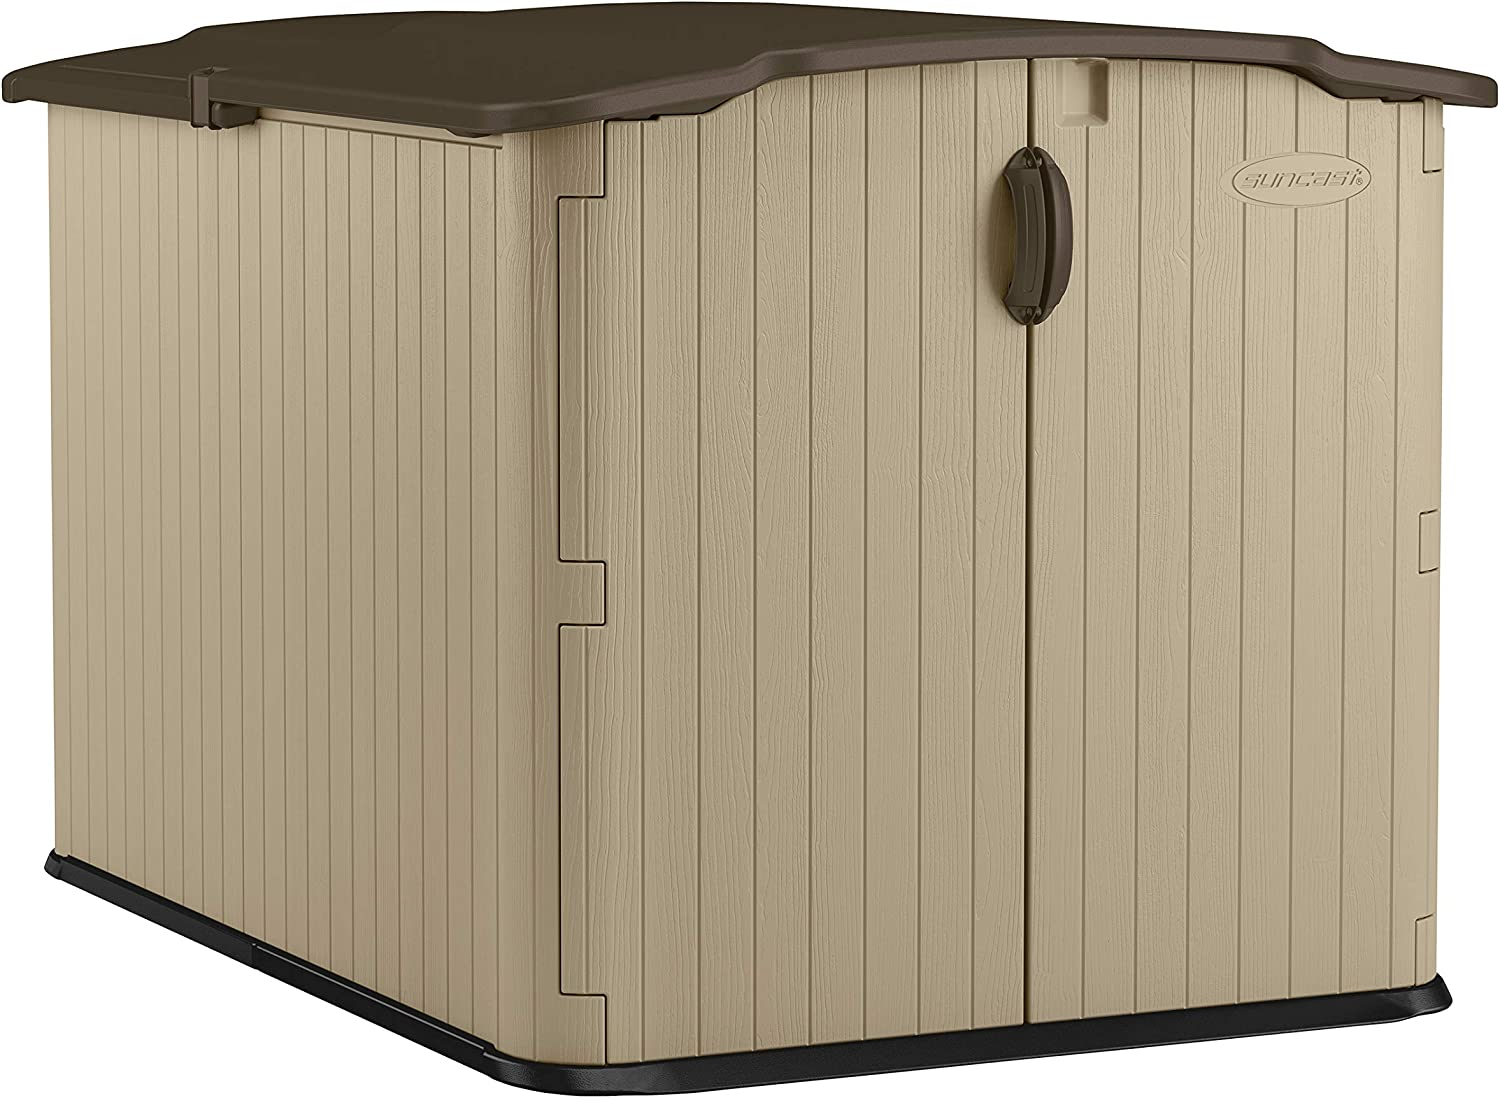 Suncast BMS4900D EMW7306442 Glidetop Slide Lid Outdoor Storage Shed with Walk-In A, Brown